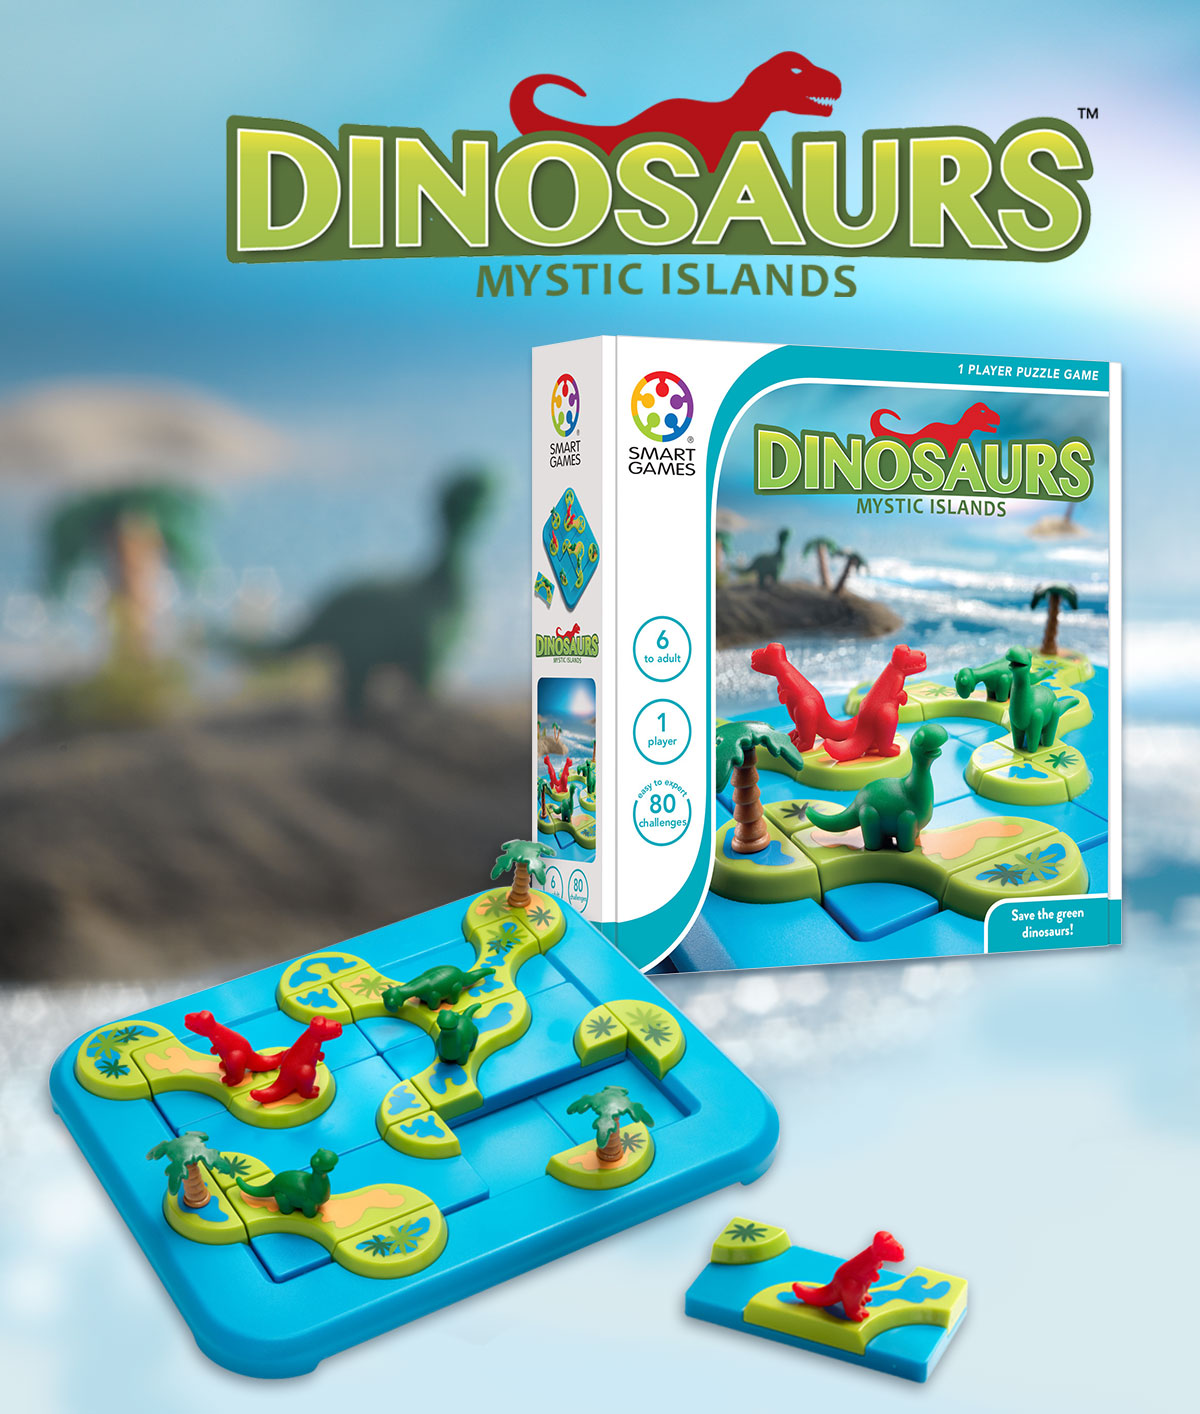 Dinosaurs – Mystic Islands